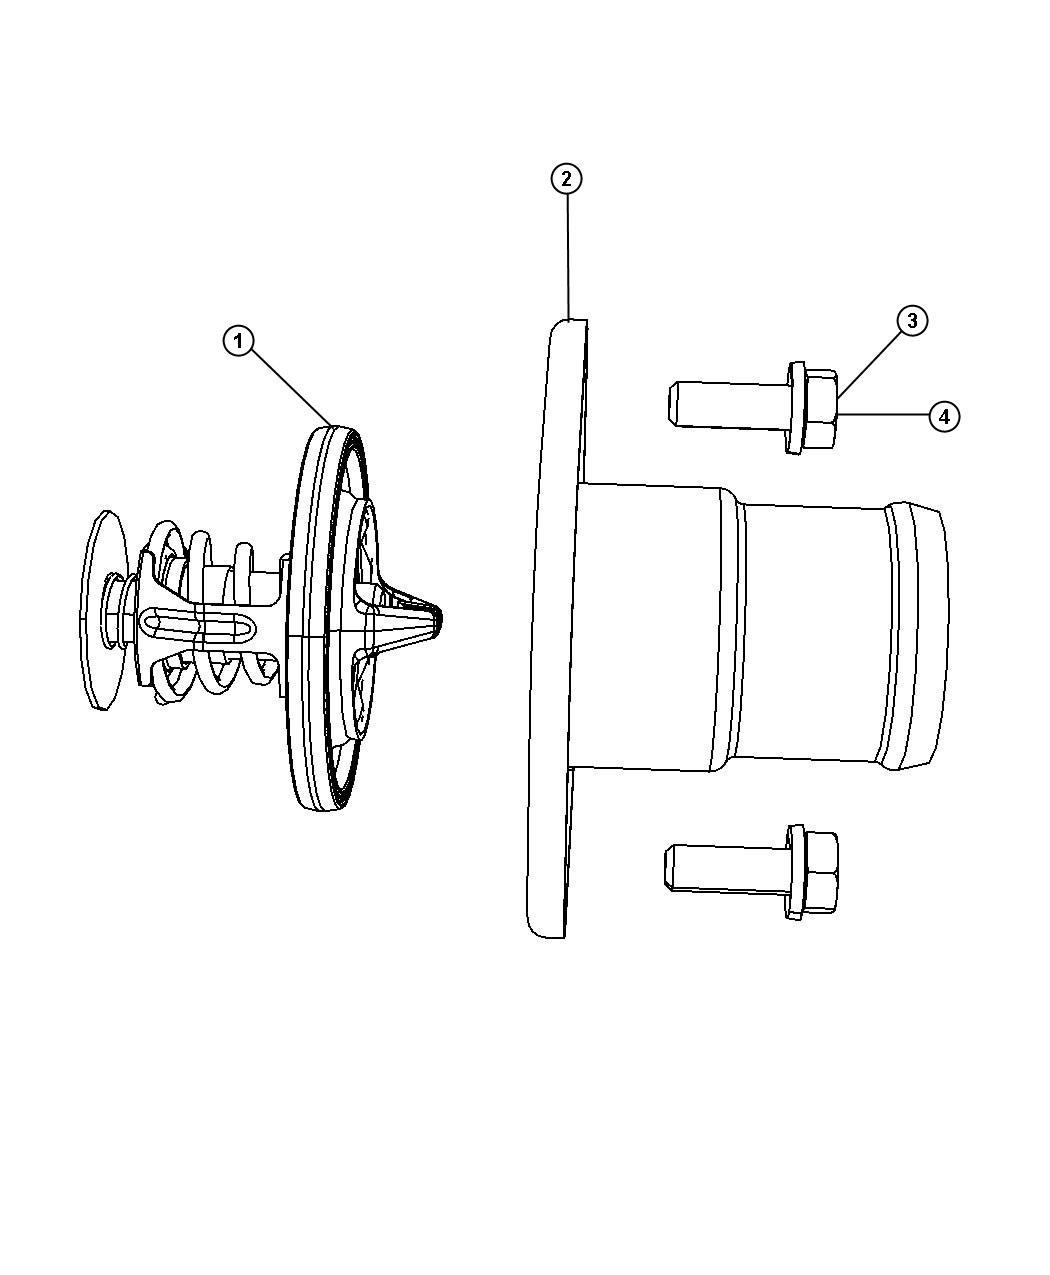 Cover For Thermostat